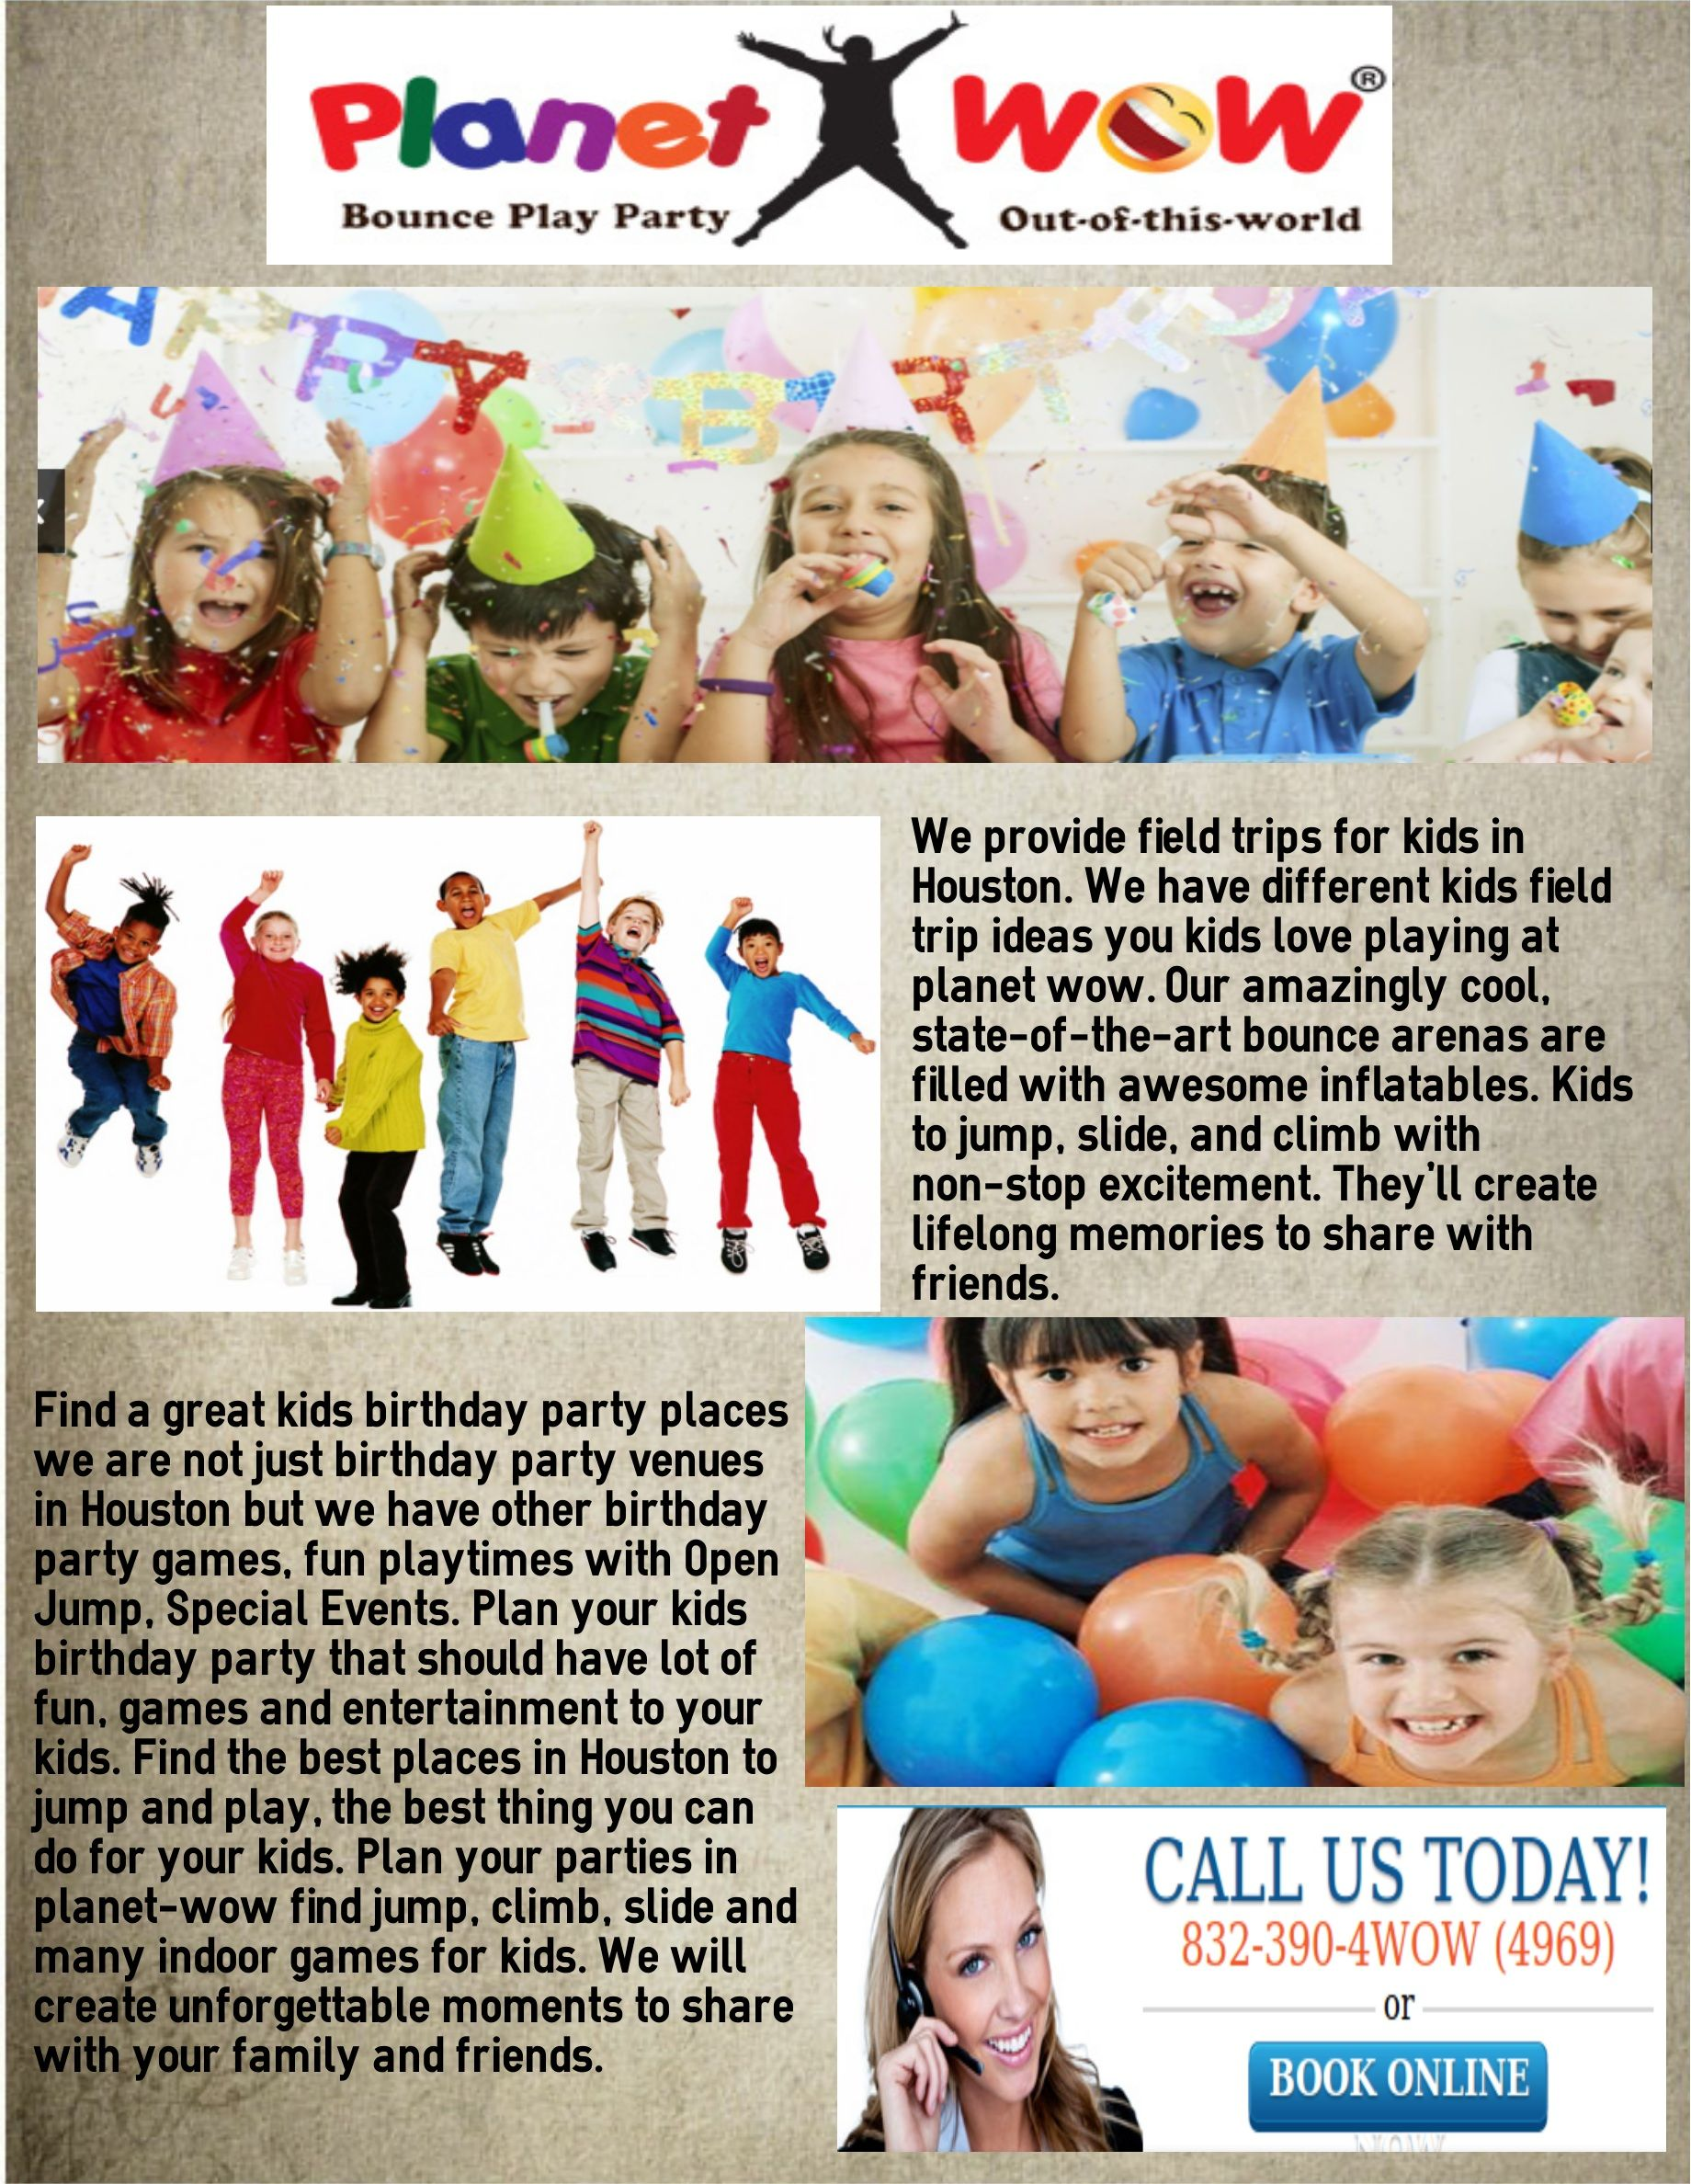 Find a great kids birthday party places we are not just birthday